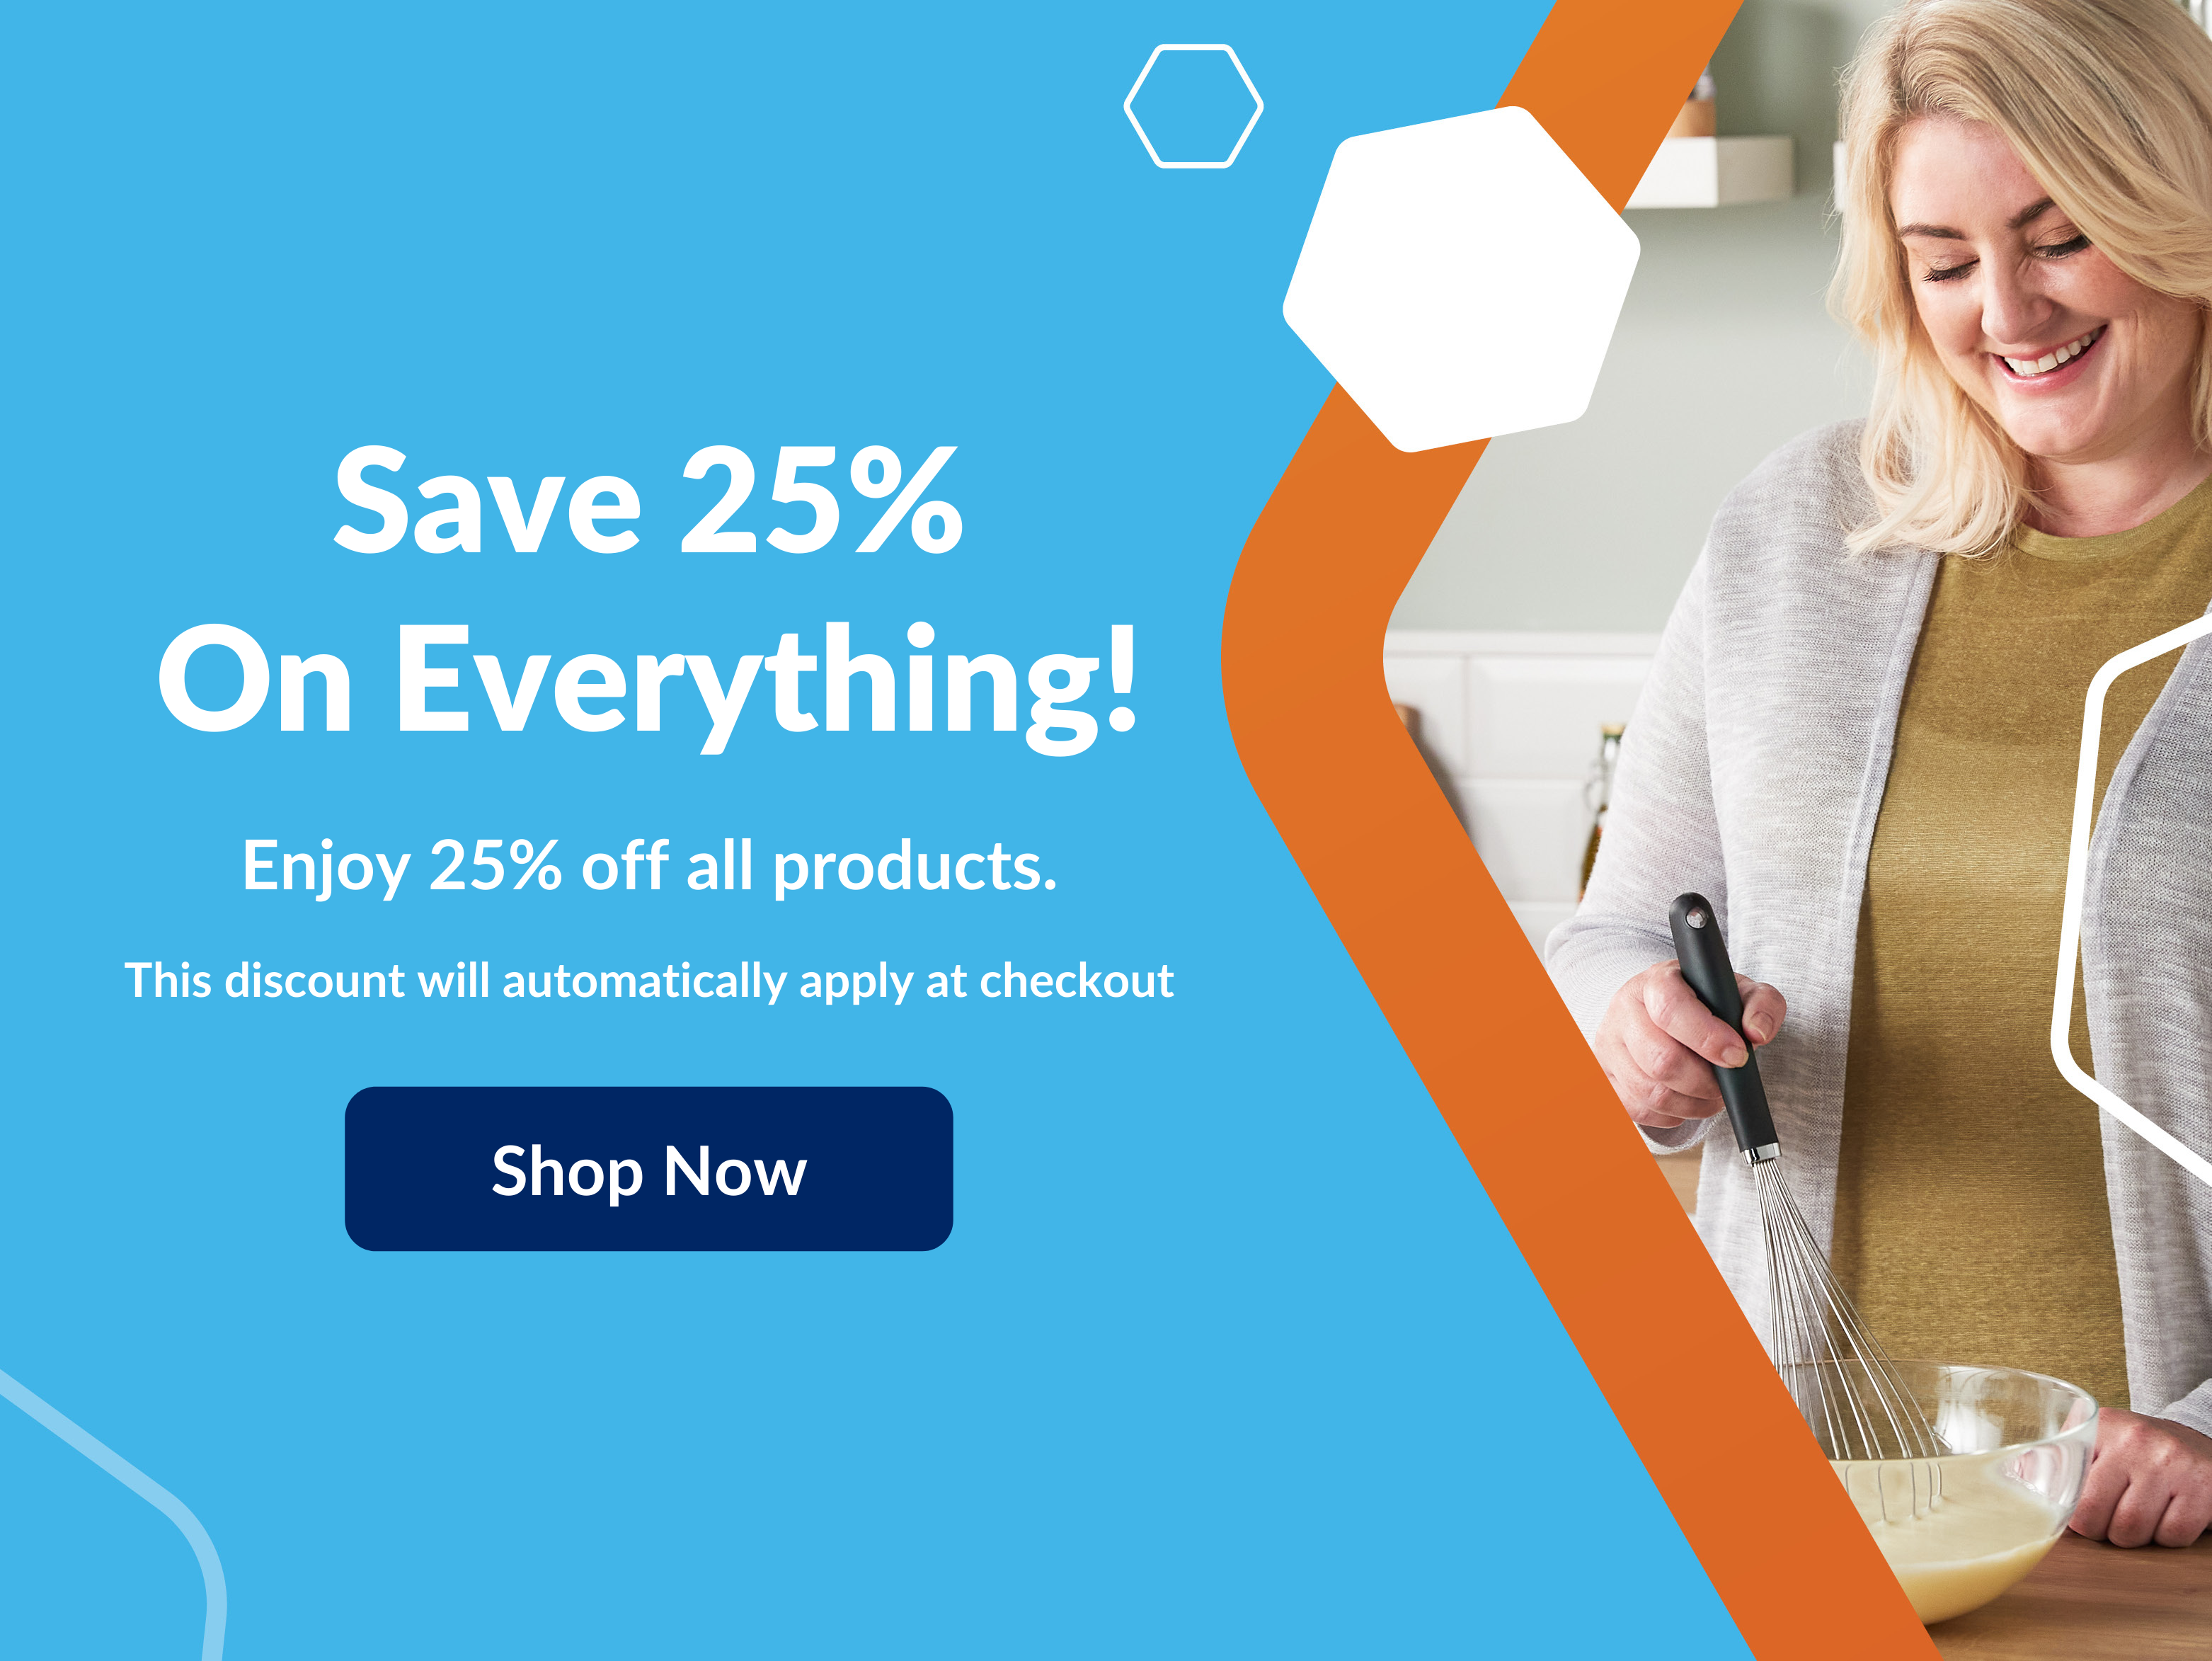 Save 25% on Everything